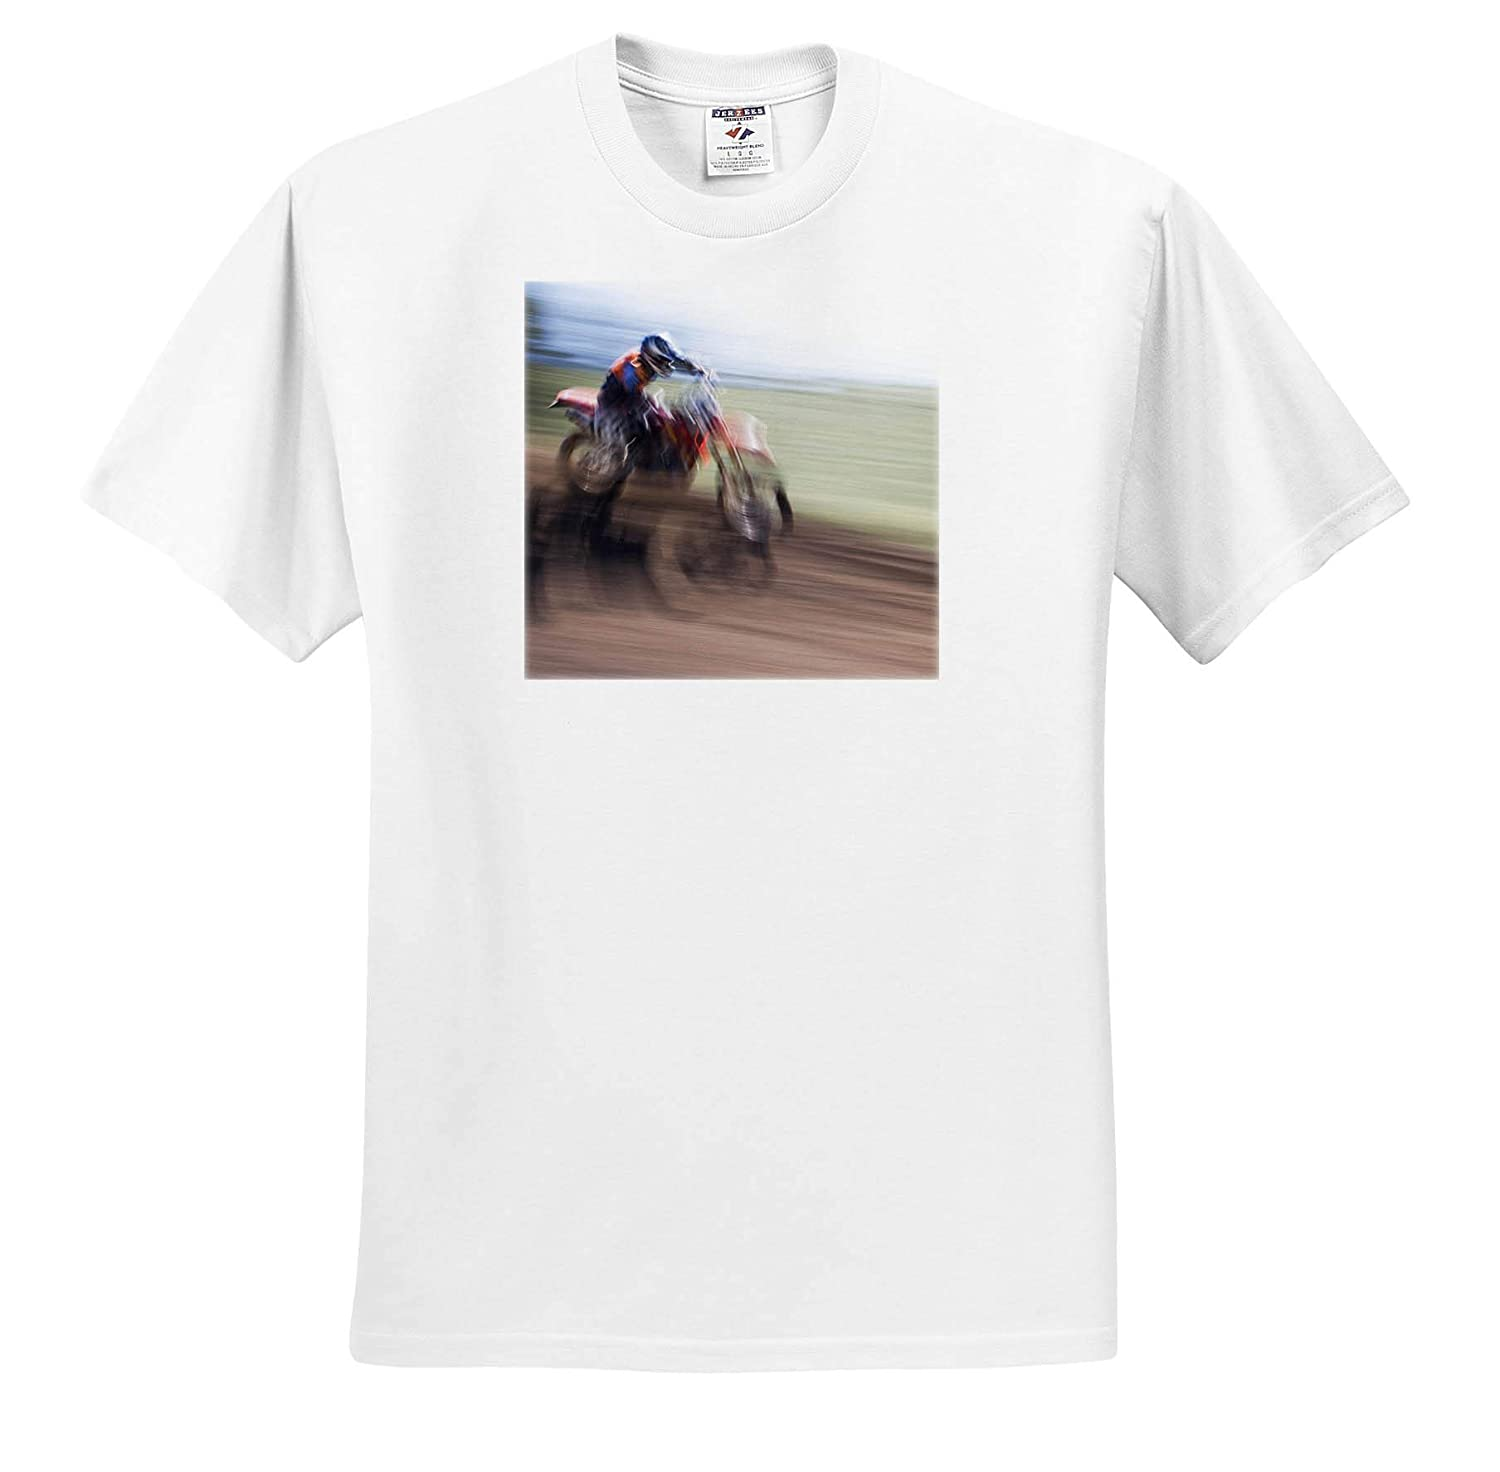 - Adult T-Shirt XL 3dRose Danita Delimont Motorcycles ts/_314605 Blur of Motocross Racer California USA